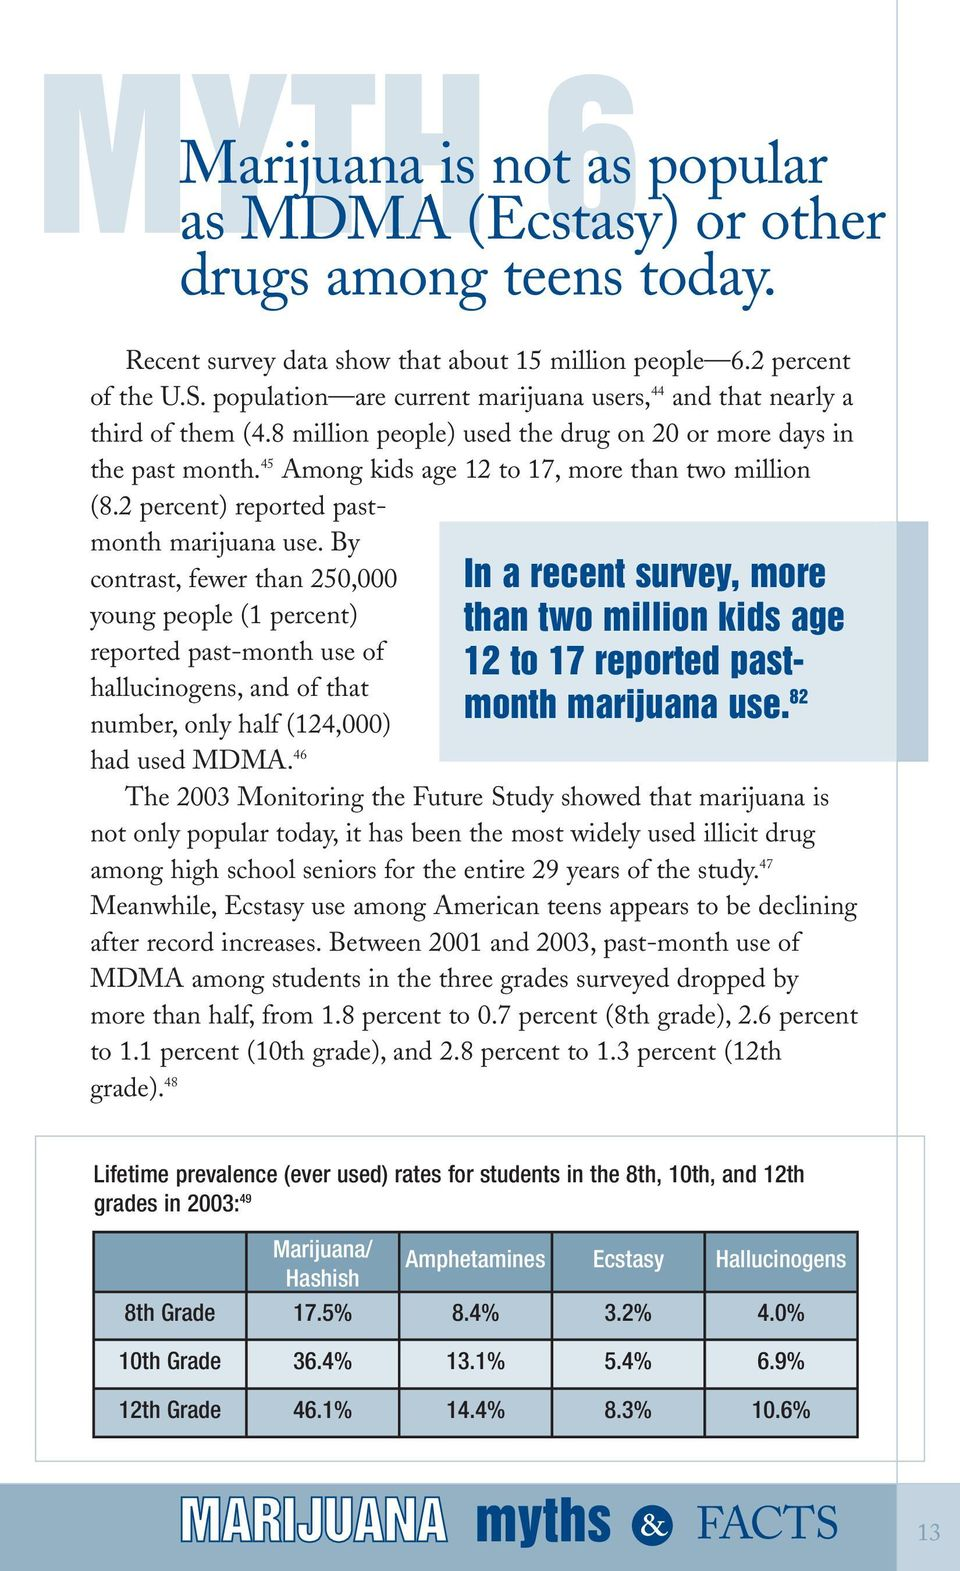 45 Among kids age 12 to 17, more than two million (8.2 percent) reported pastmonth marijuana use.